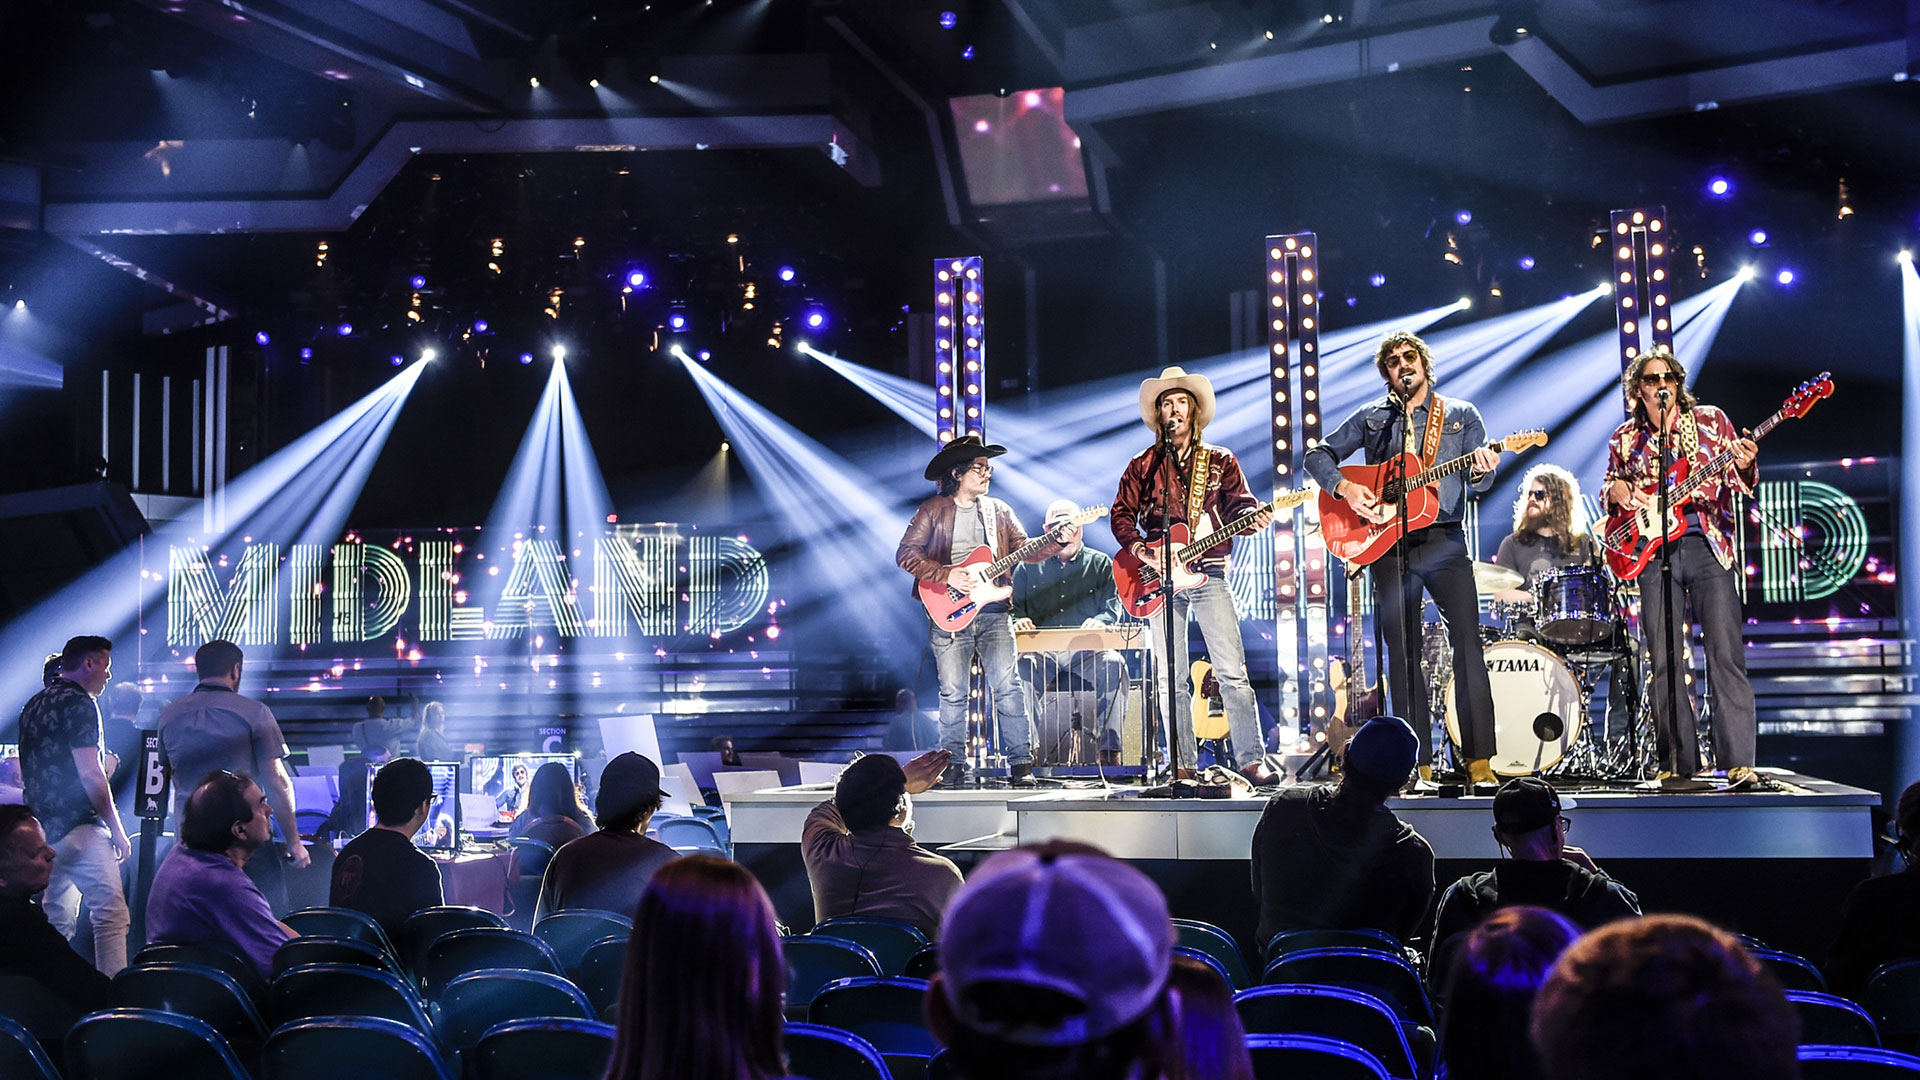 Midland, winner of New Vocal Duo or Group of the Year, gear up for the band's first ACM performance.